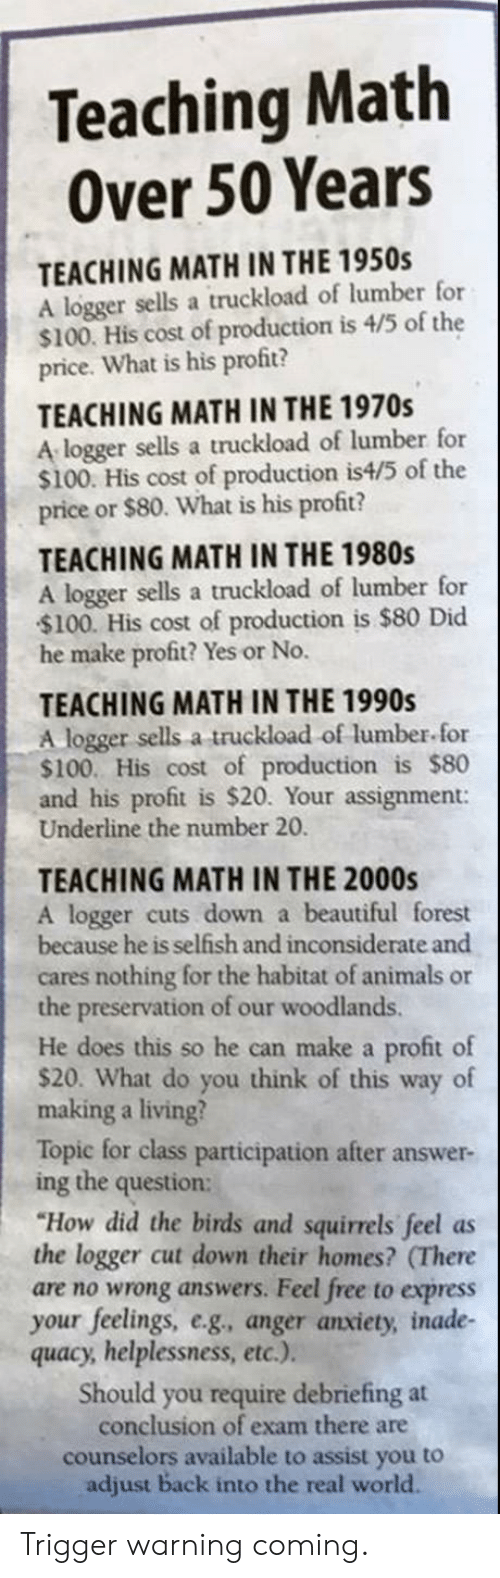 """Counselors: Teaching Math  Over 50 Years  TEACHING MATH IN THE 1950s  A logger sells a truckload of lumber for  $100. His cost of production is 4/5 of the  price. What is his profit?  TEACHING MATH IN THE 1970s  A logger sells a truckload of lumber for  $100. His cost of production is4/5 of the  price or $80. What is his profit?  TEACHING MATH IN THE 1980s  A logger sells a truckload of lumber for  $100. His cost of production is $80 Did  he make profit? Yes or No.  TEACHING MATH IN THE 1990s  A logger sells a truckload of lumber for  $100. His cost of production is $80  and his profit is $20. Your assignment:  Underline the number 20.  TEACHING MATH IN THE 2000s  A logger cuts down a beautiful forest  because he is selfish and inconsiderate and  cares nothing for the habitat of animals or  the preservation of our woodlands.  He does this so he can make a profit of  $20. What do you think of this way of  making a living?  Topic for class participation after answer-  ing the question:  """"How did the birds and squirrels feel as  the logger cut down their homes? (There  are no wrong answers. Feel free to express  your feelings, e.g, anger anxiety, inade-  quacy, helplessness, etc.).  Should you require debriefing at  conclusion of exam there are  counselors available to assist you to  adjust back into the real world. Trigger warning coming."""